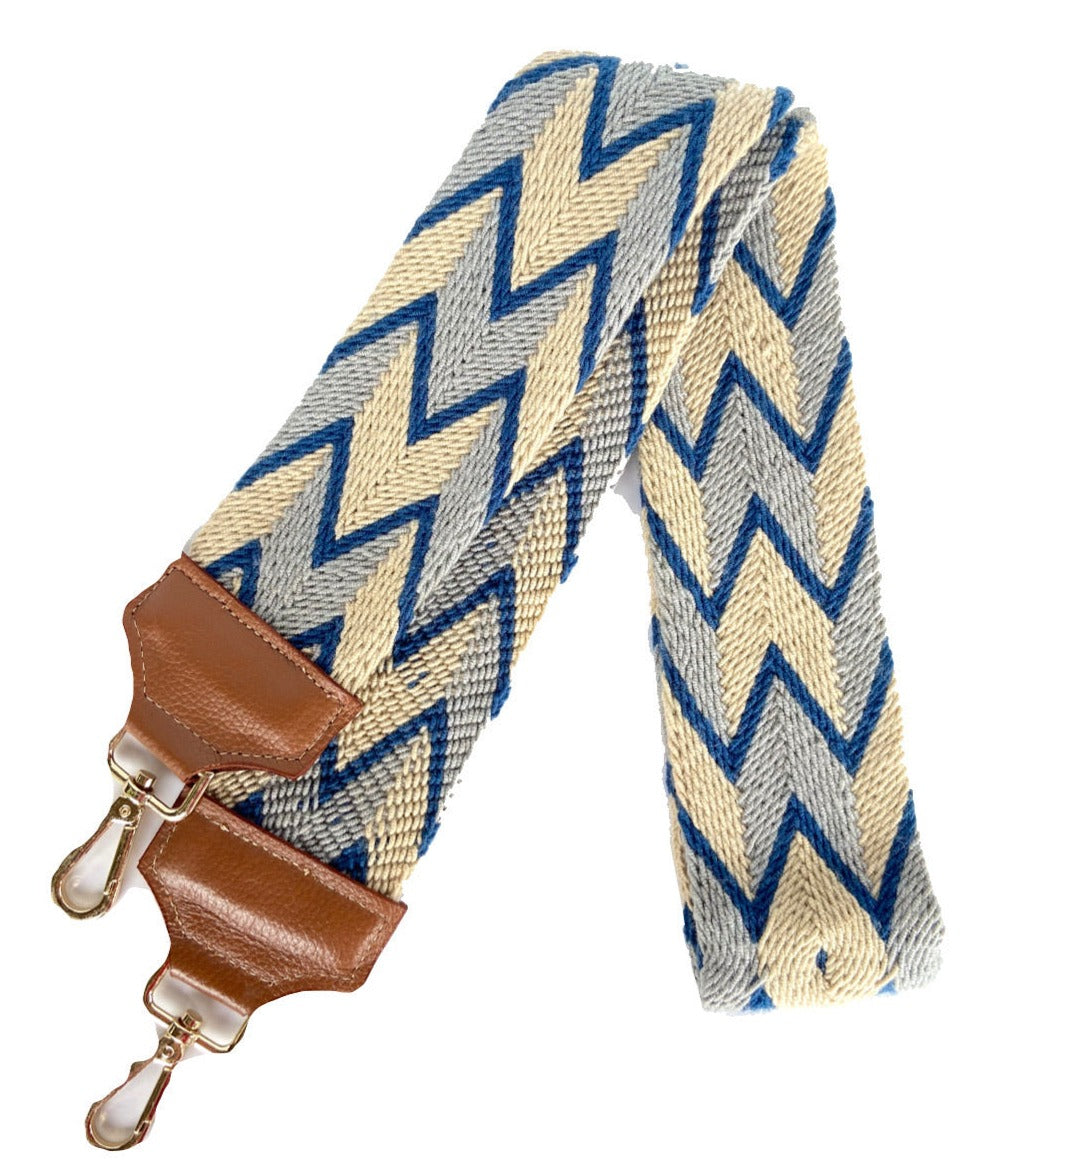 Blue Nude Bag Strap-Camera Strap-Strap Replacement-Woven-leather-straps